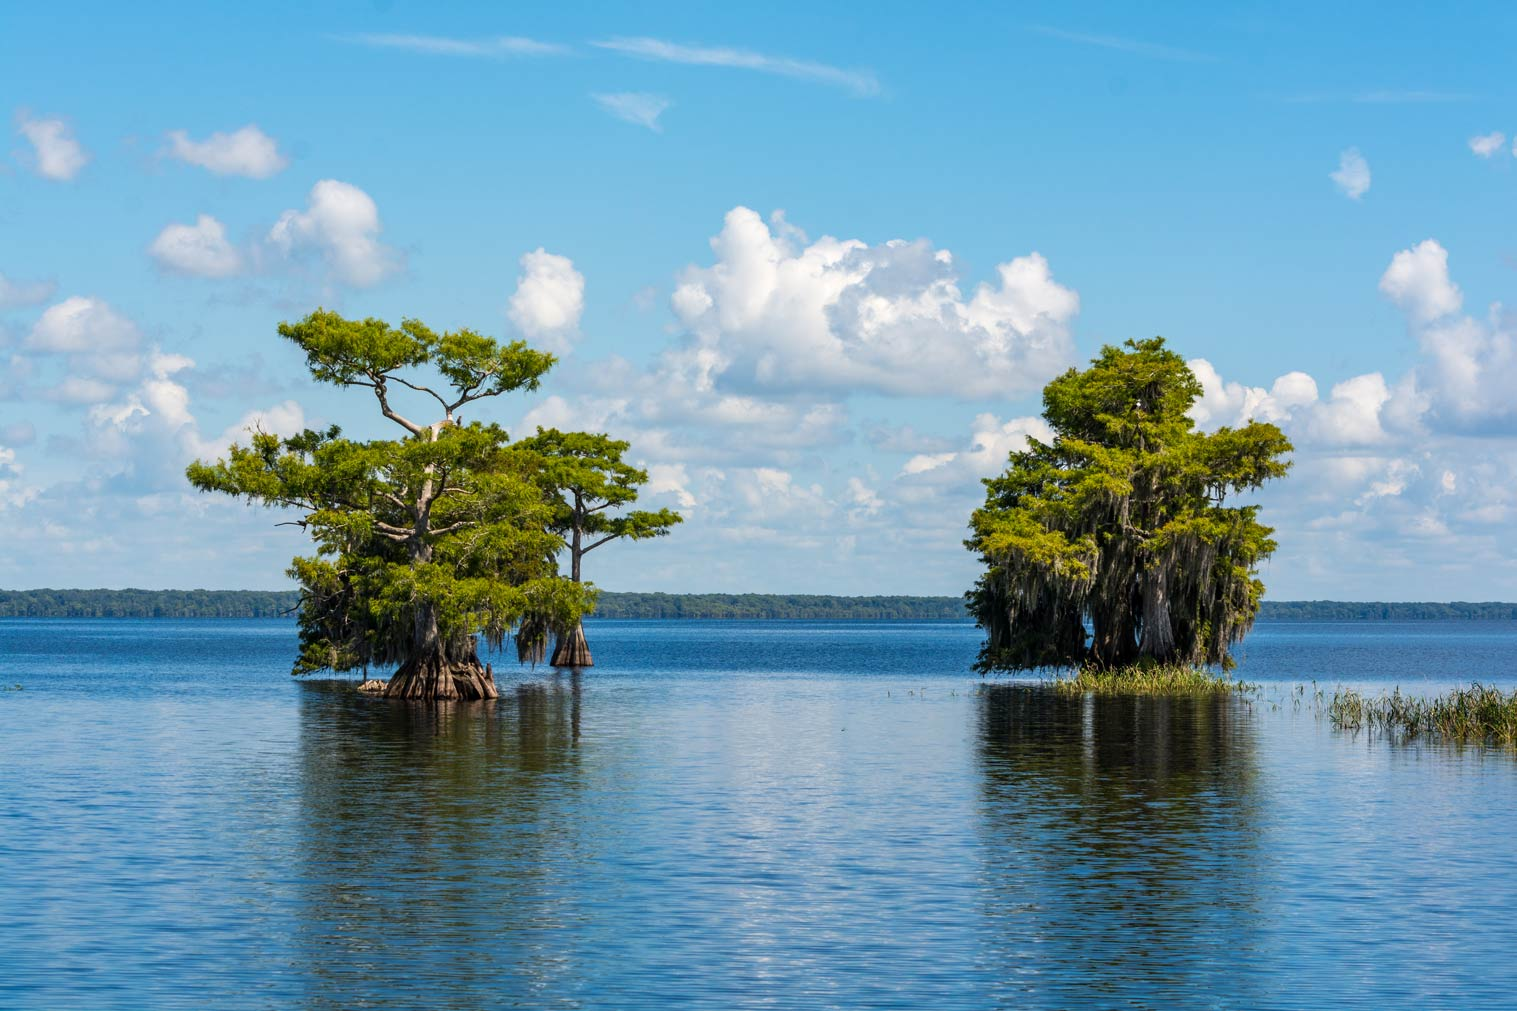 Two bunched of cypress trees standing in water